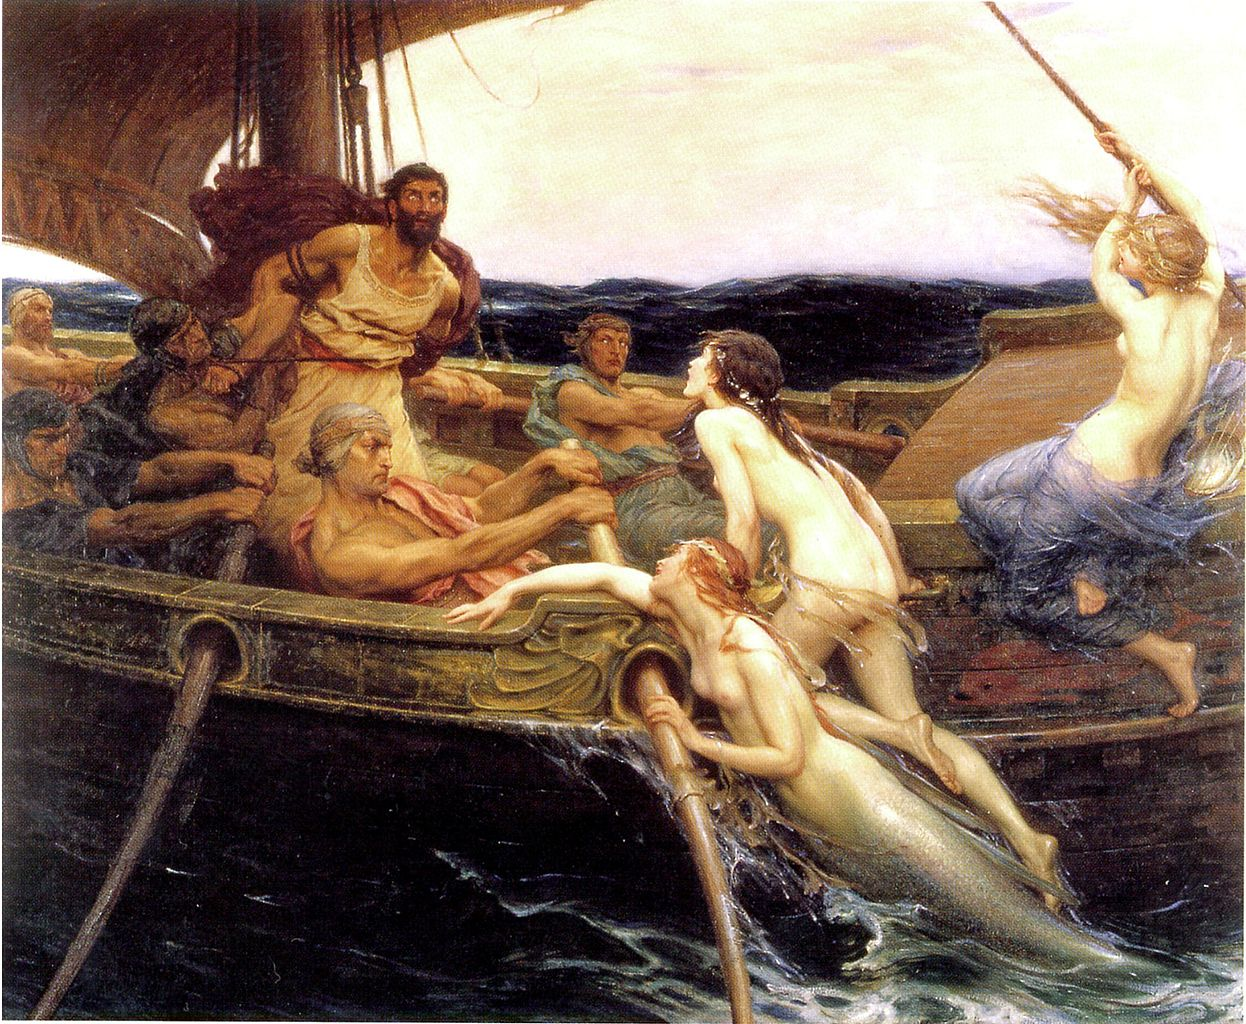 http://upload.wikimedia.org/wikipedia/commons/thumb/a/a5/Draper-Ulysses_and_Sirens.jpg/1246px-Draper-Ulysses_and_Sirens.jpg